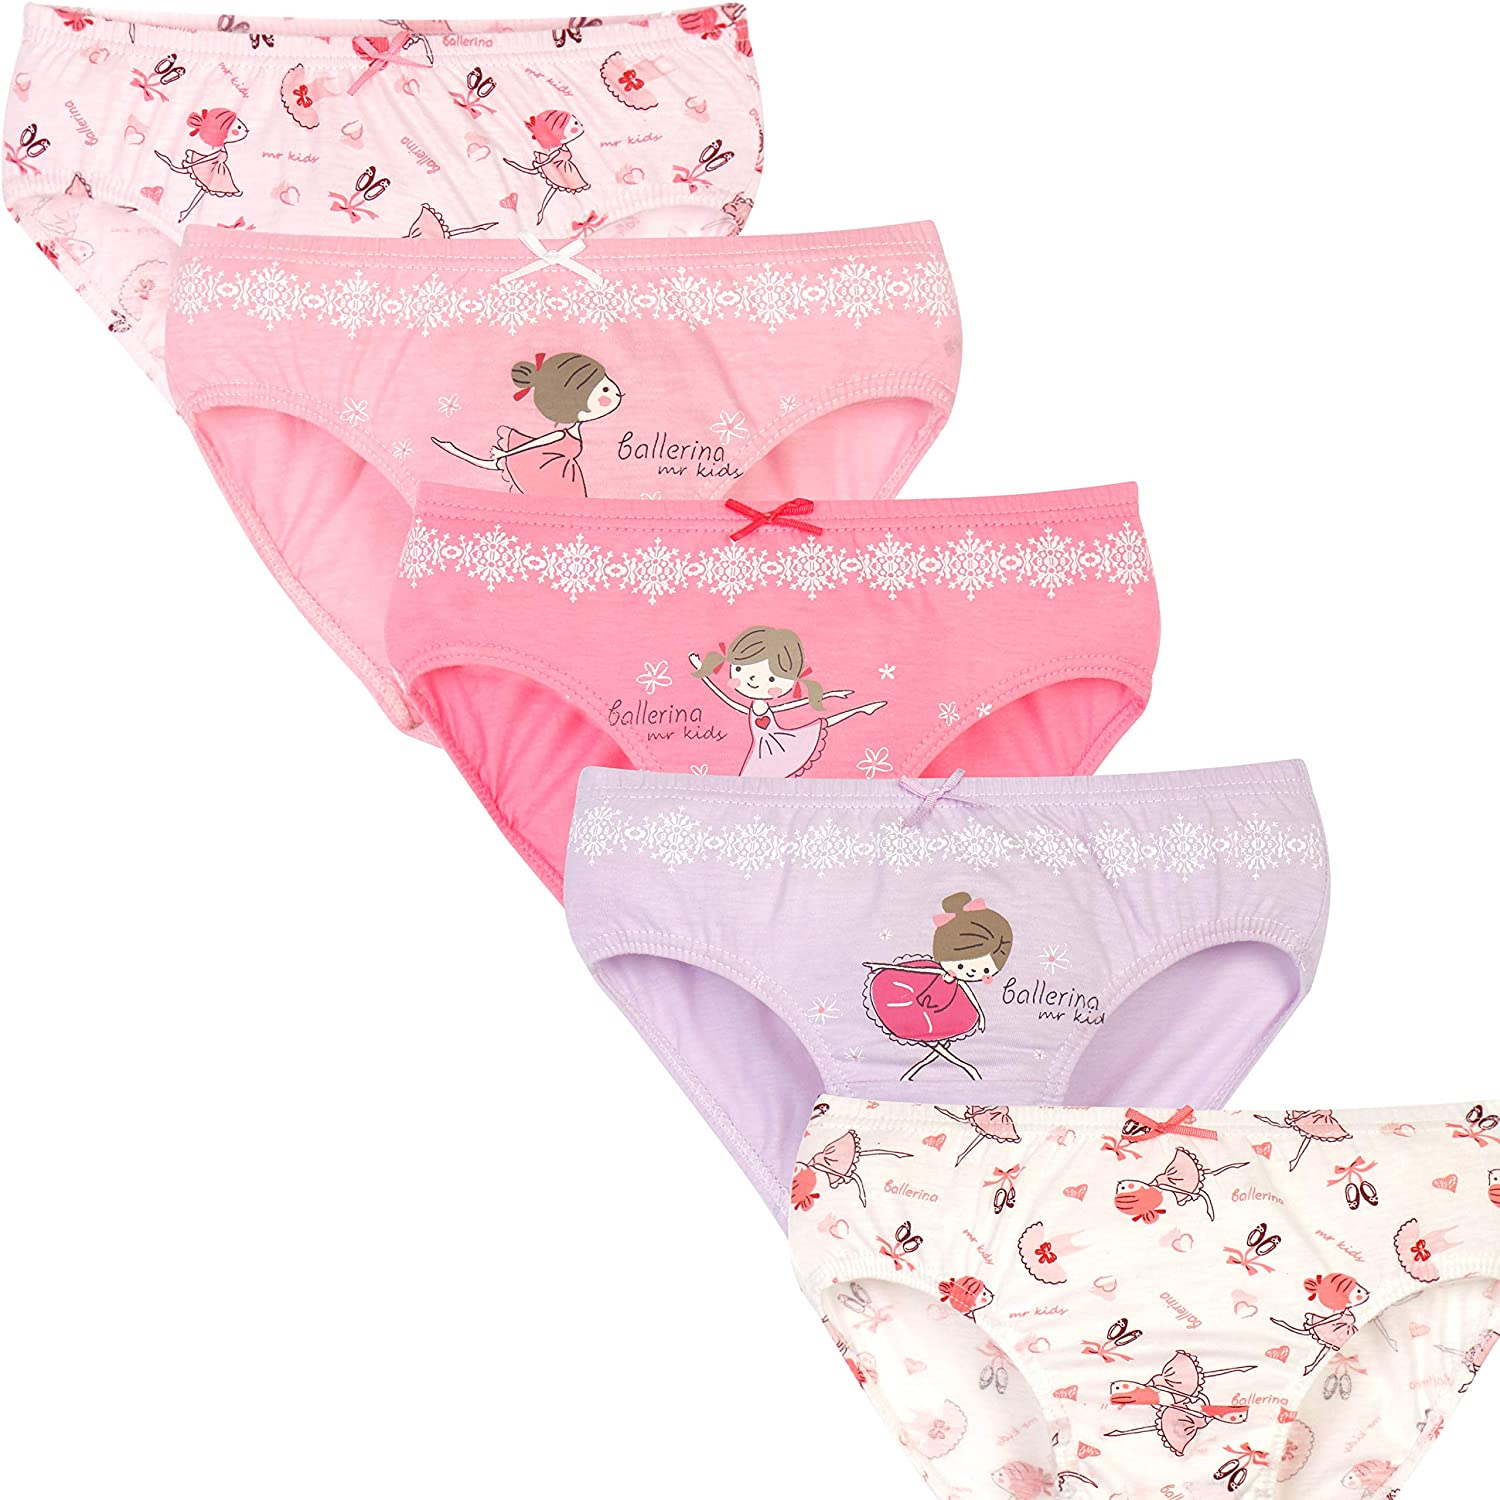 a1b83297410e Amazon.com: MRKIDS Toddler Baby Girl's Cotton Briefs Underwear (Pack of 5):  Clothing